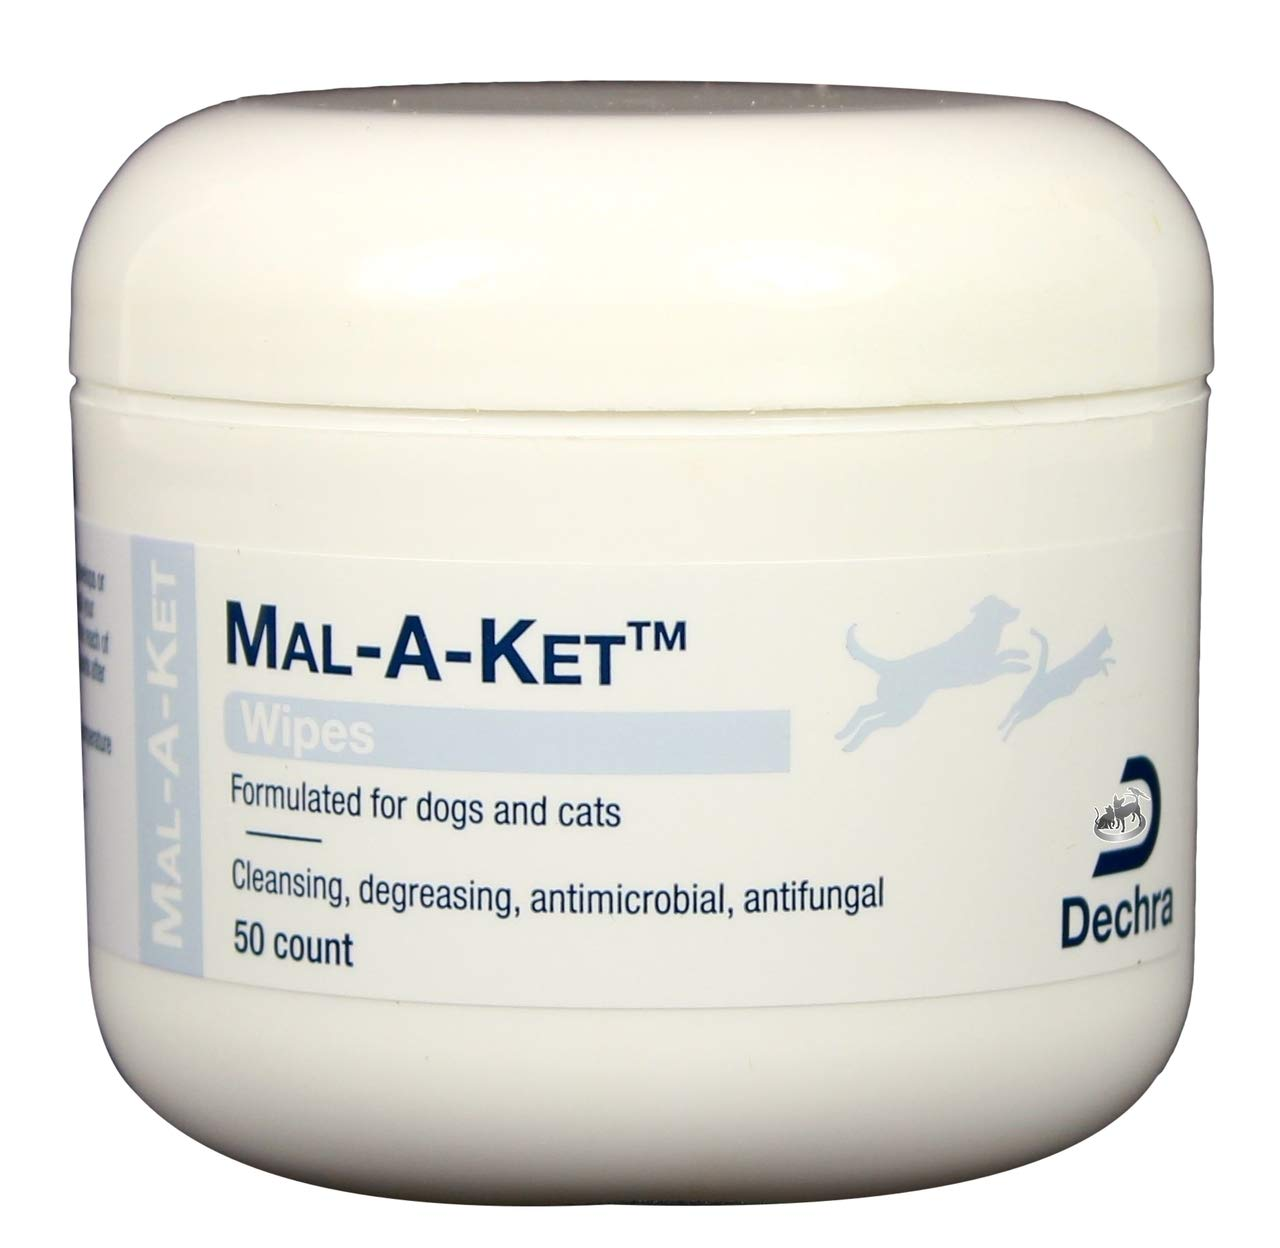 Mal-A-Ket Wipes (50 count)